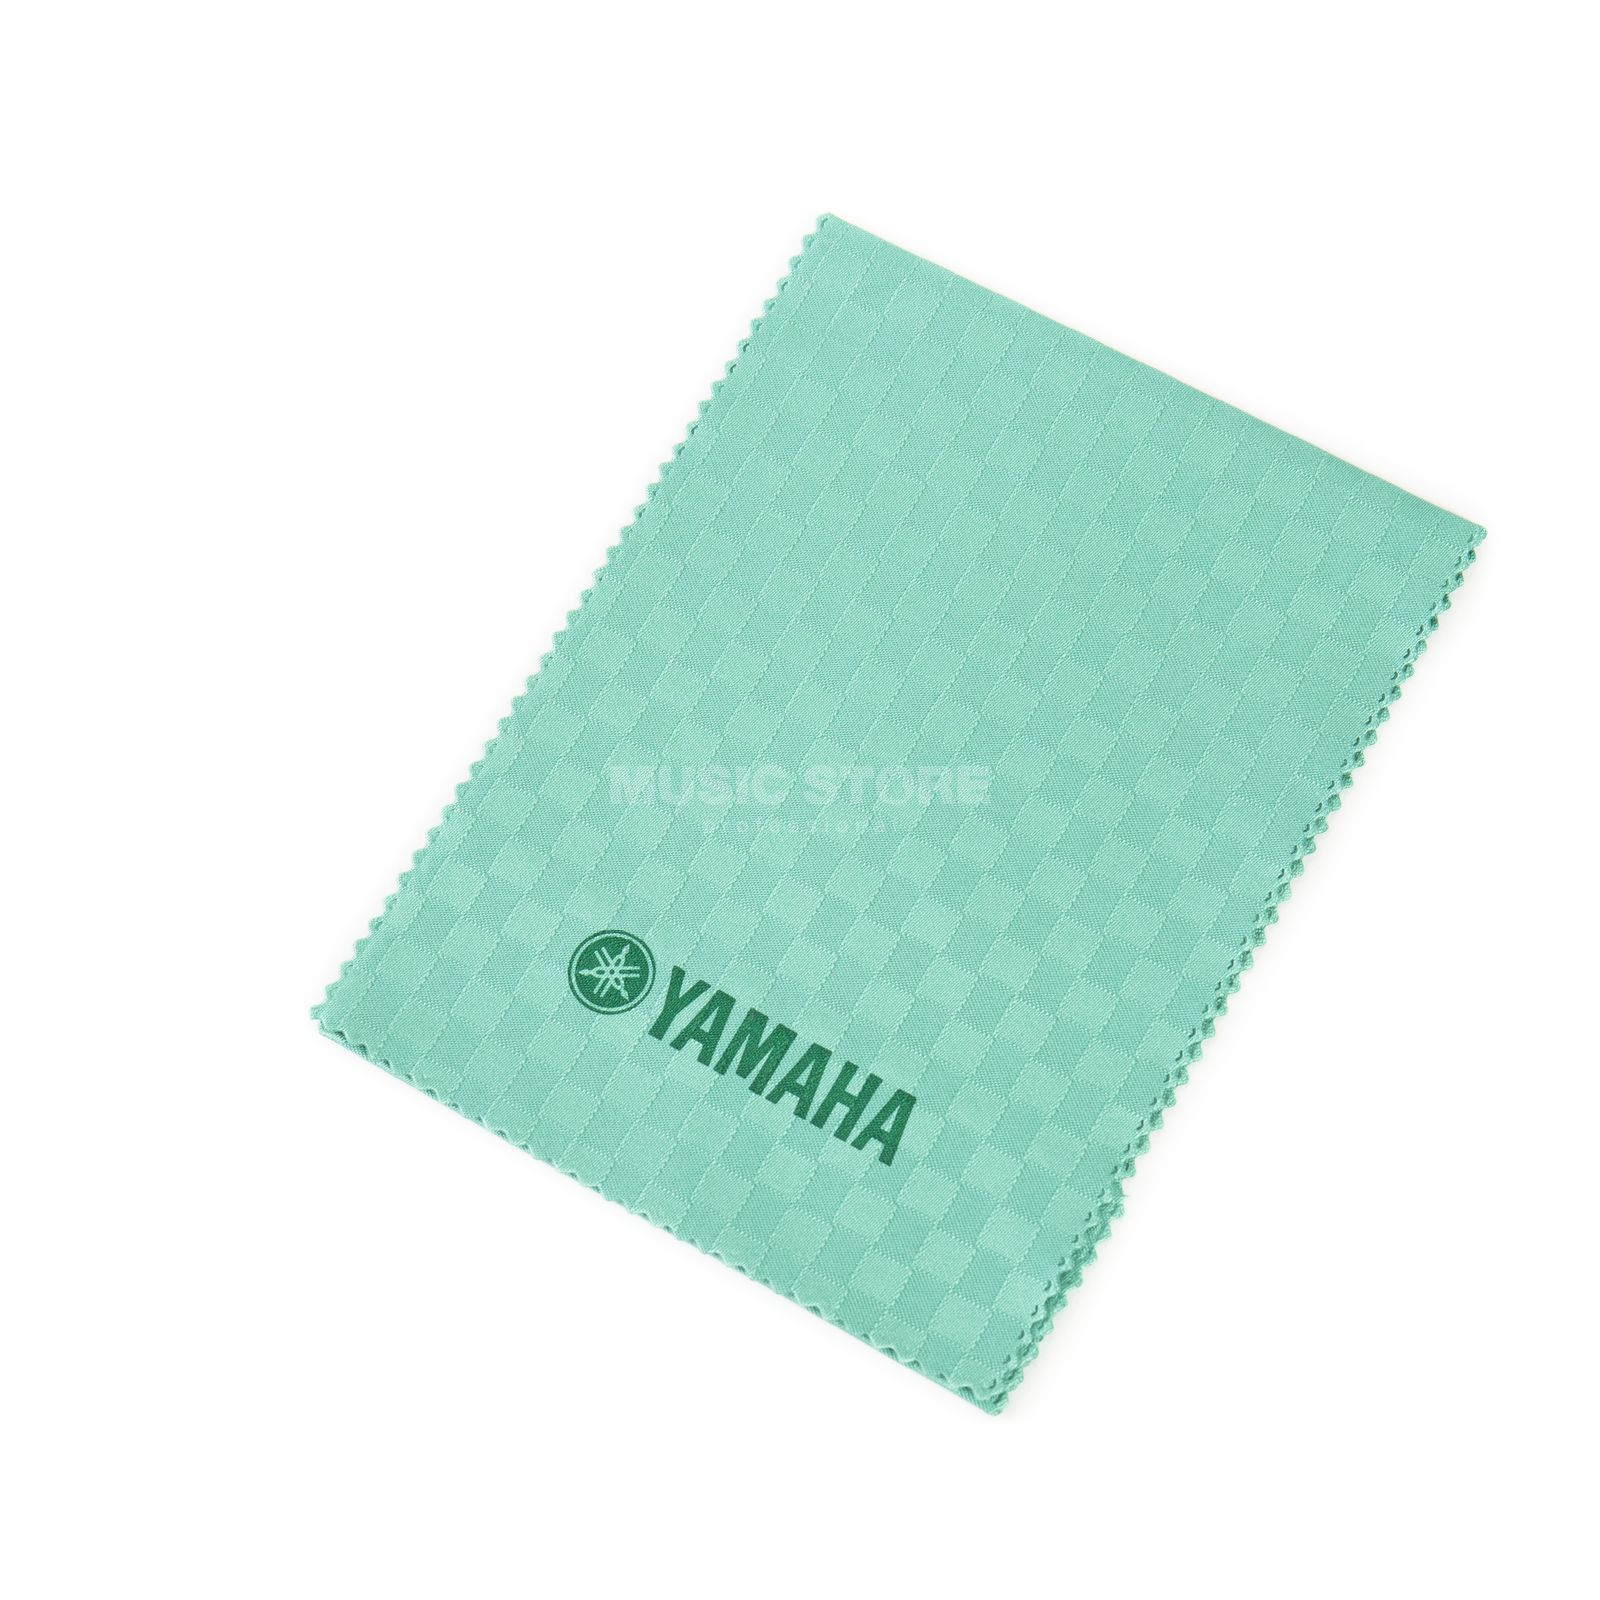 Yamaha Cleaning Cloth for Piccolo Flute Imagem do produto